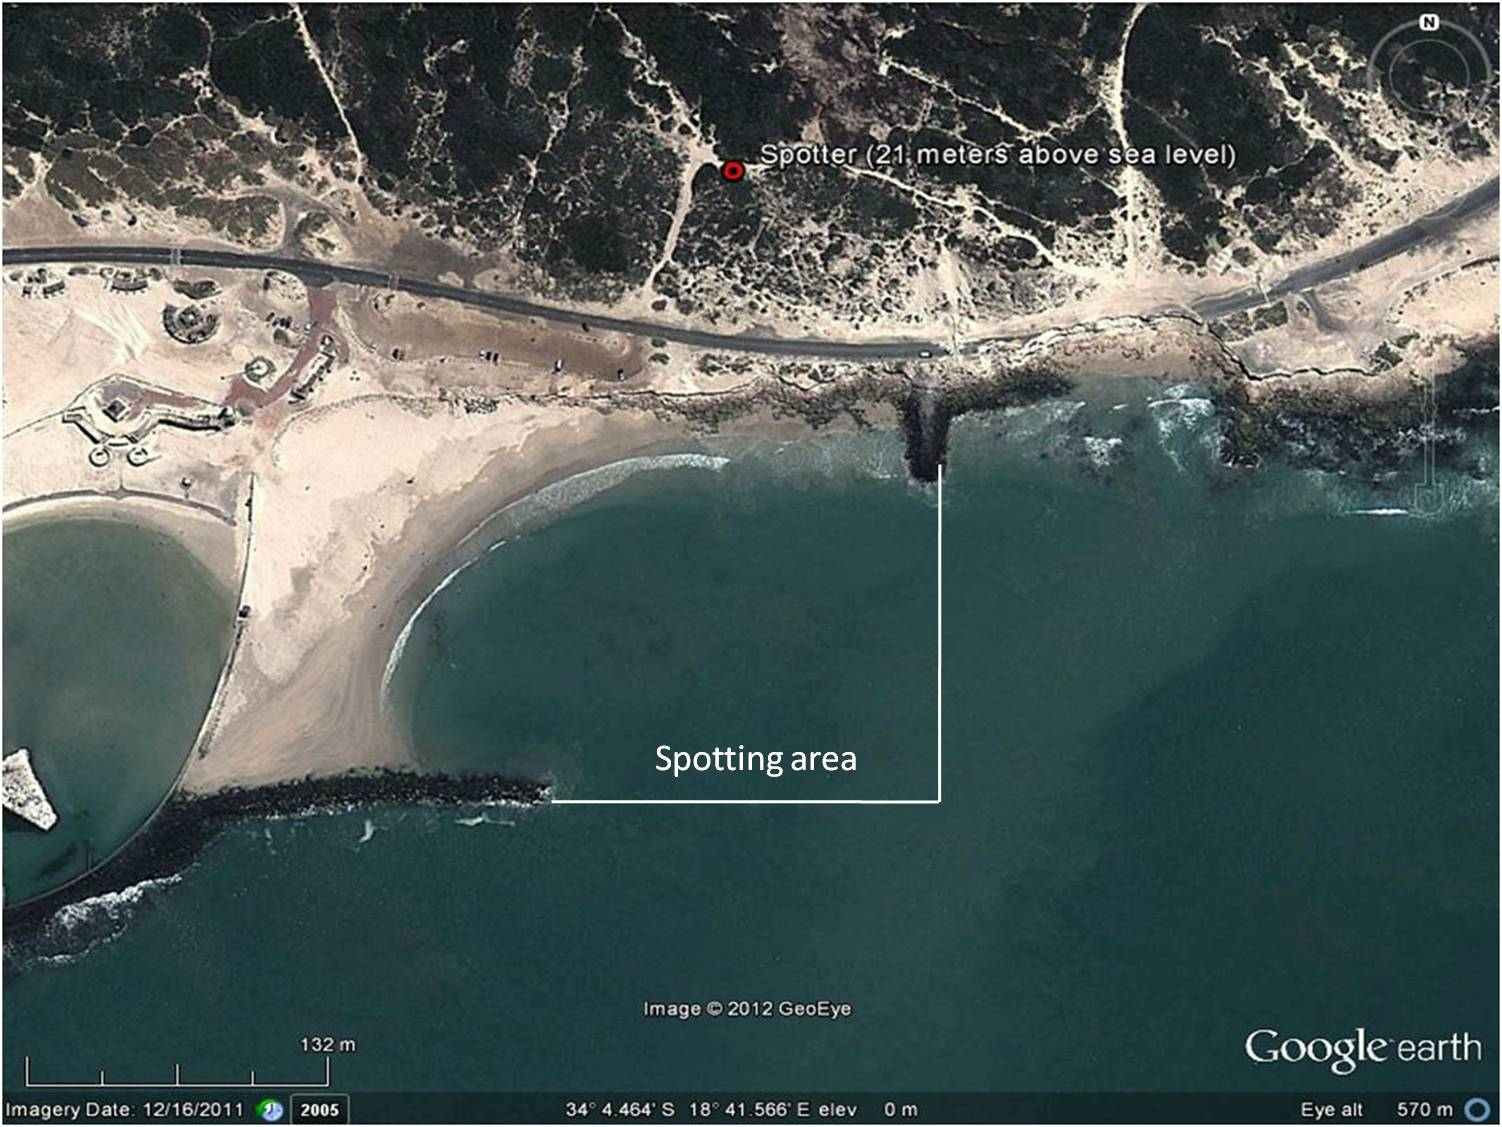 Spotting area at Monwabisi Beach